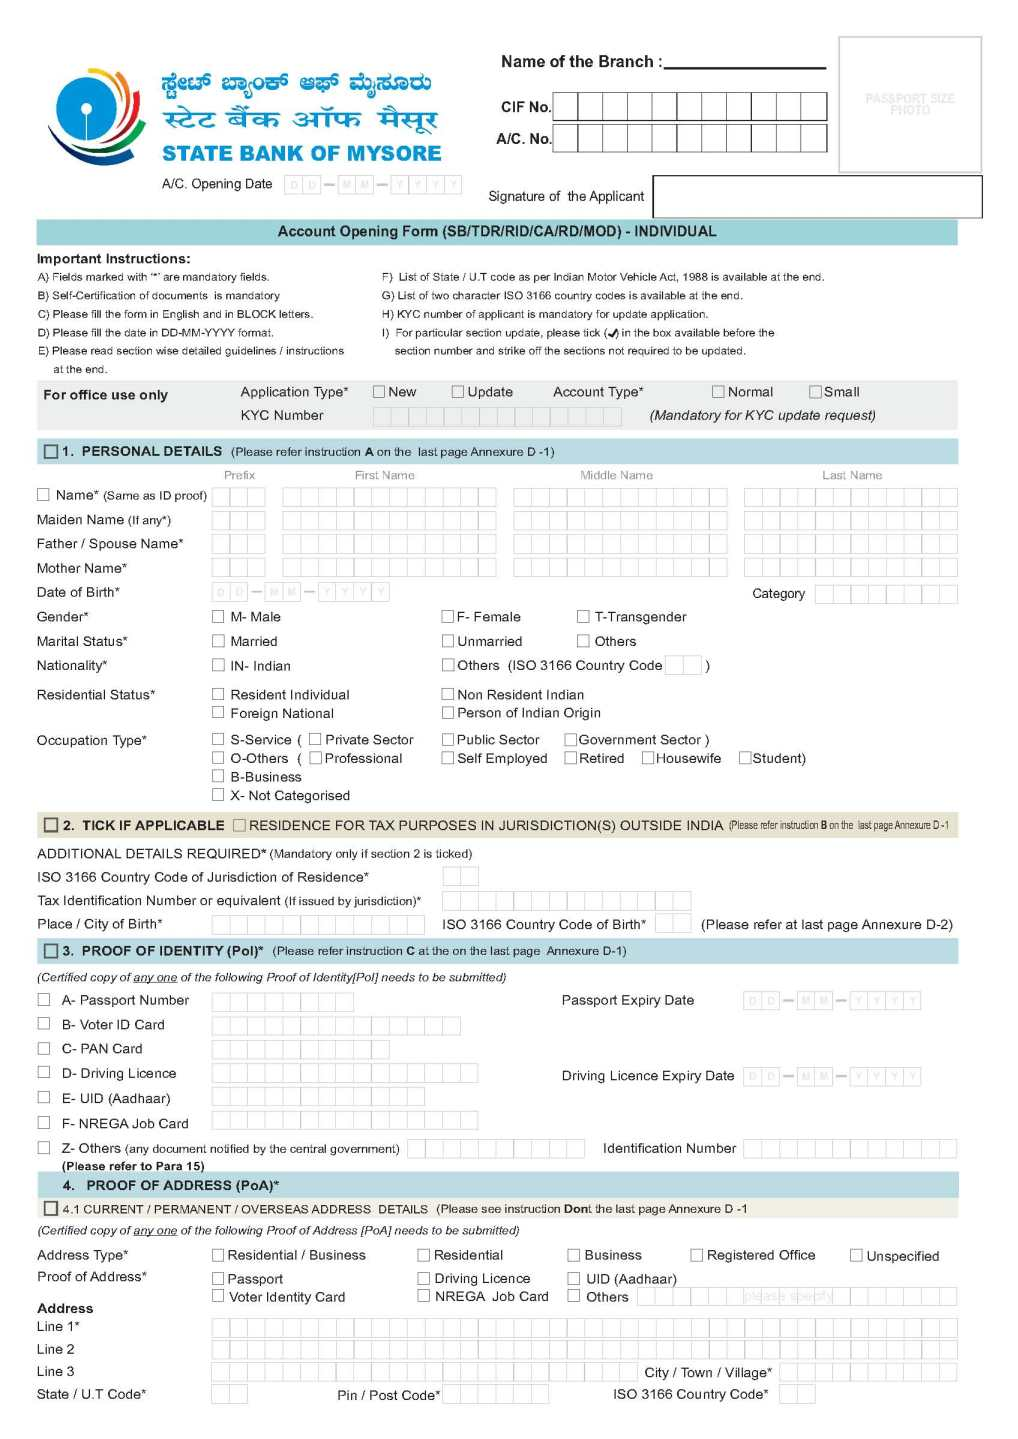 syndicate bank new account application form